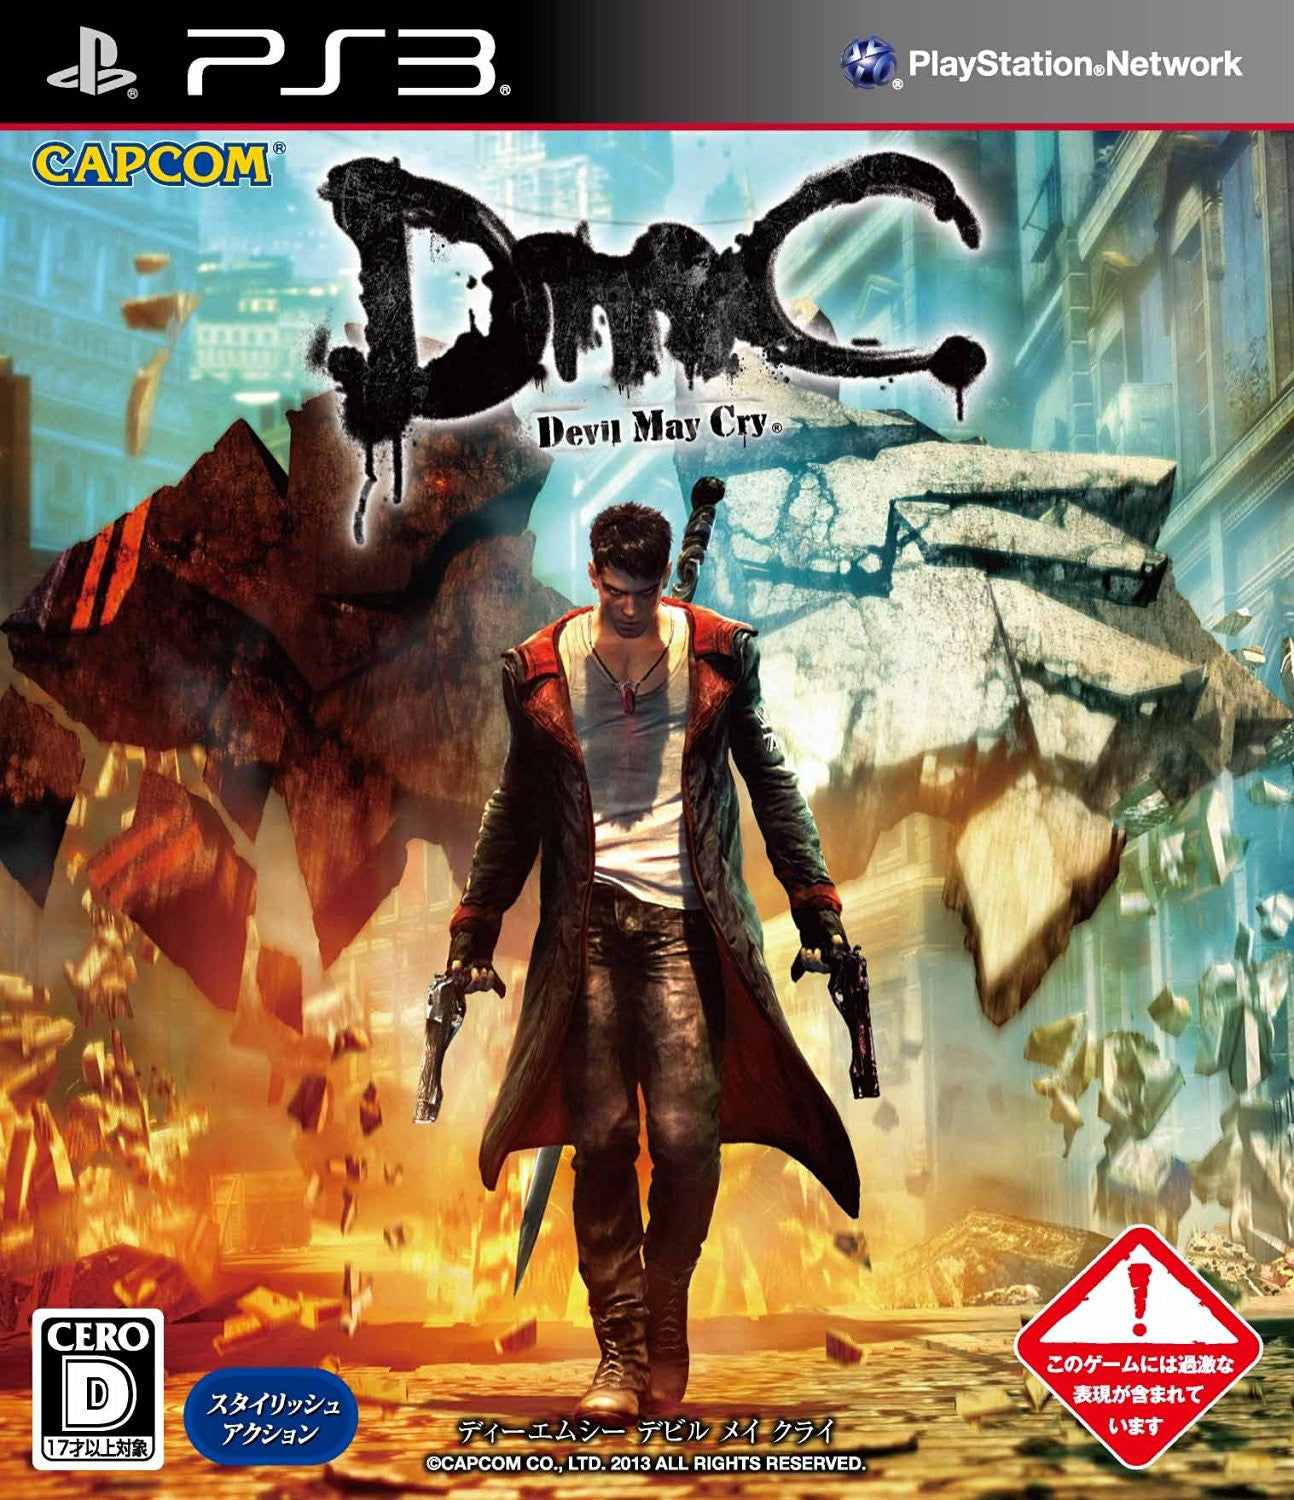 Image 3 for DmC Devil May Cry - e-Capcom Limited Edition